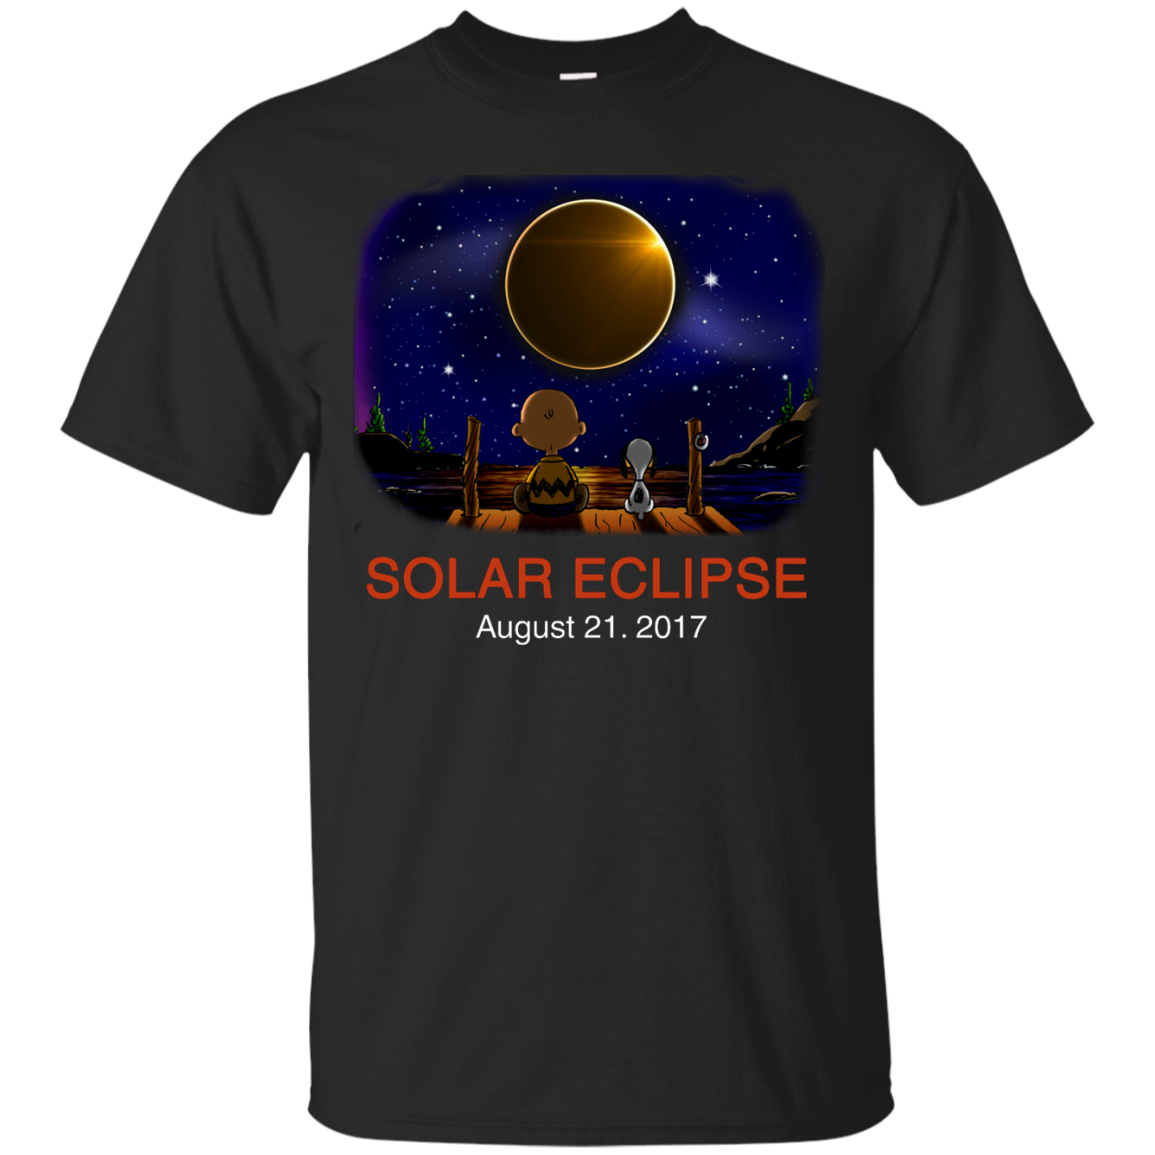 Snoopy and Charlie Brown: Solar Eclipse August 21, 2017 unisex t shirt, tank, hoodie